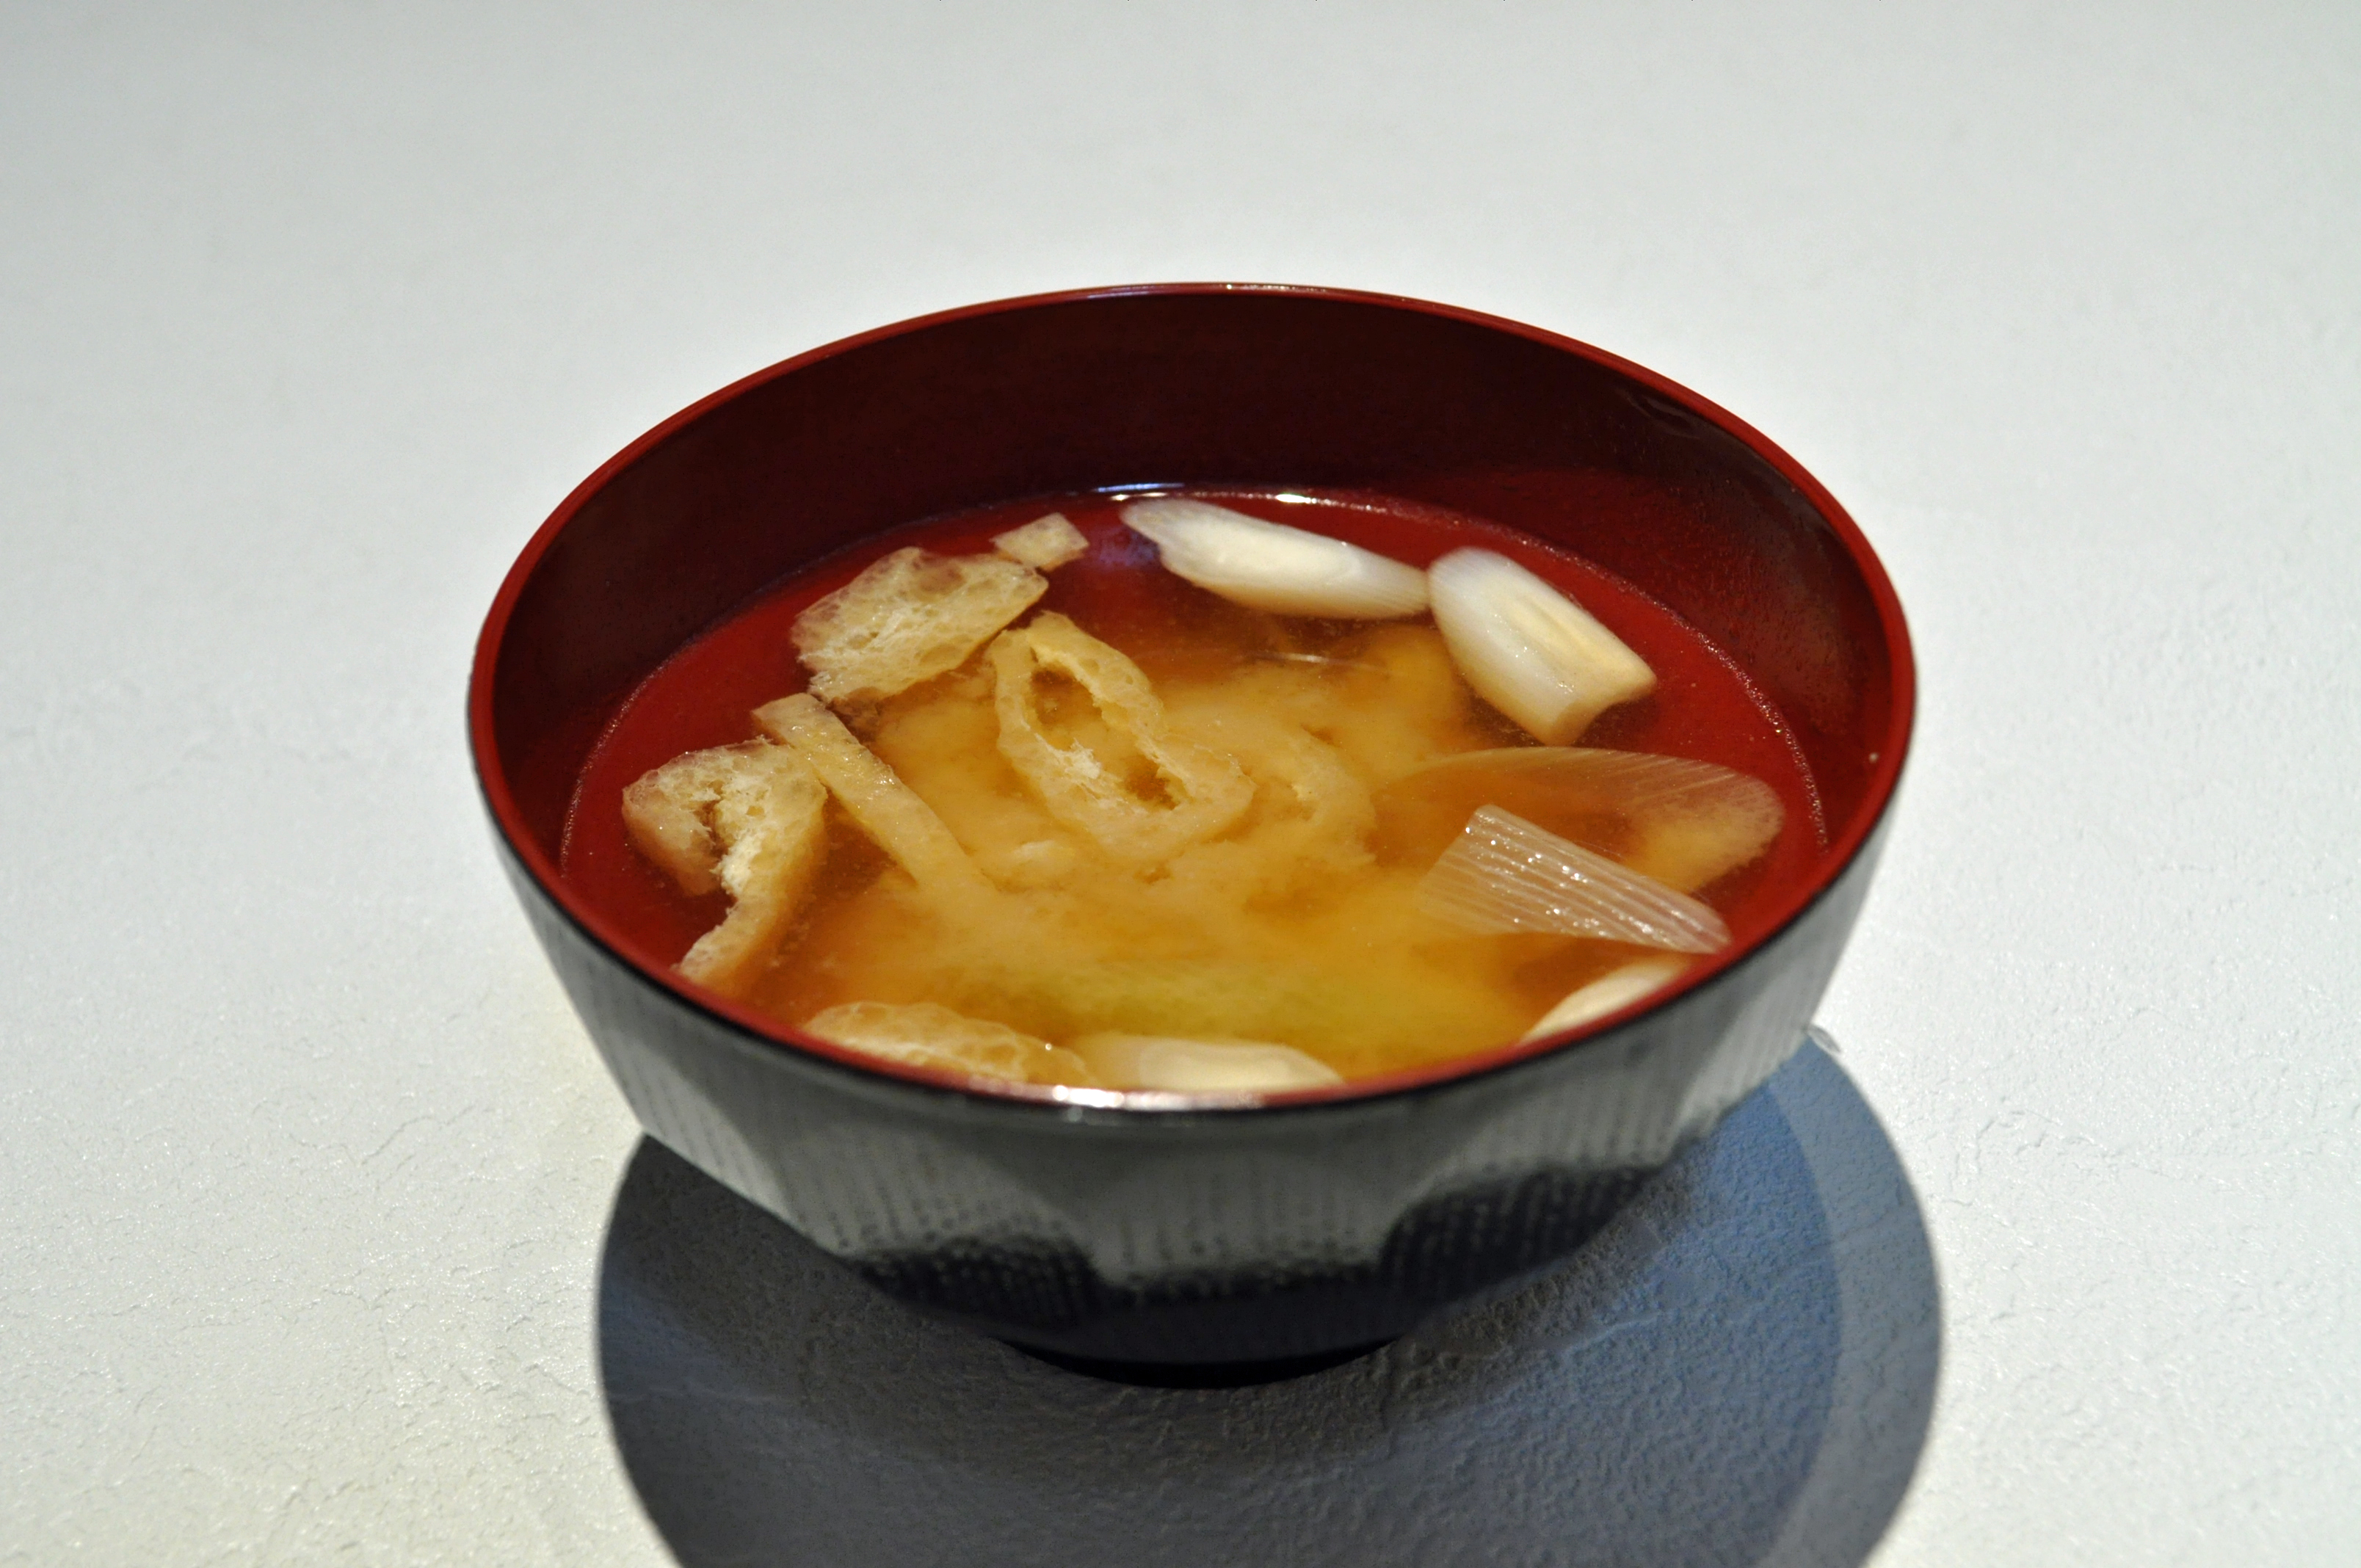 ... Green onion and deep-fried bean curd miso soup.jpg - Wikimedia Commons